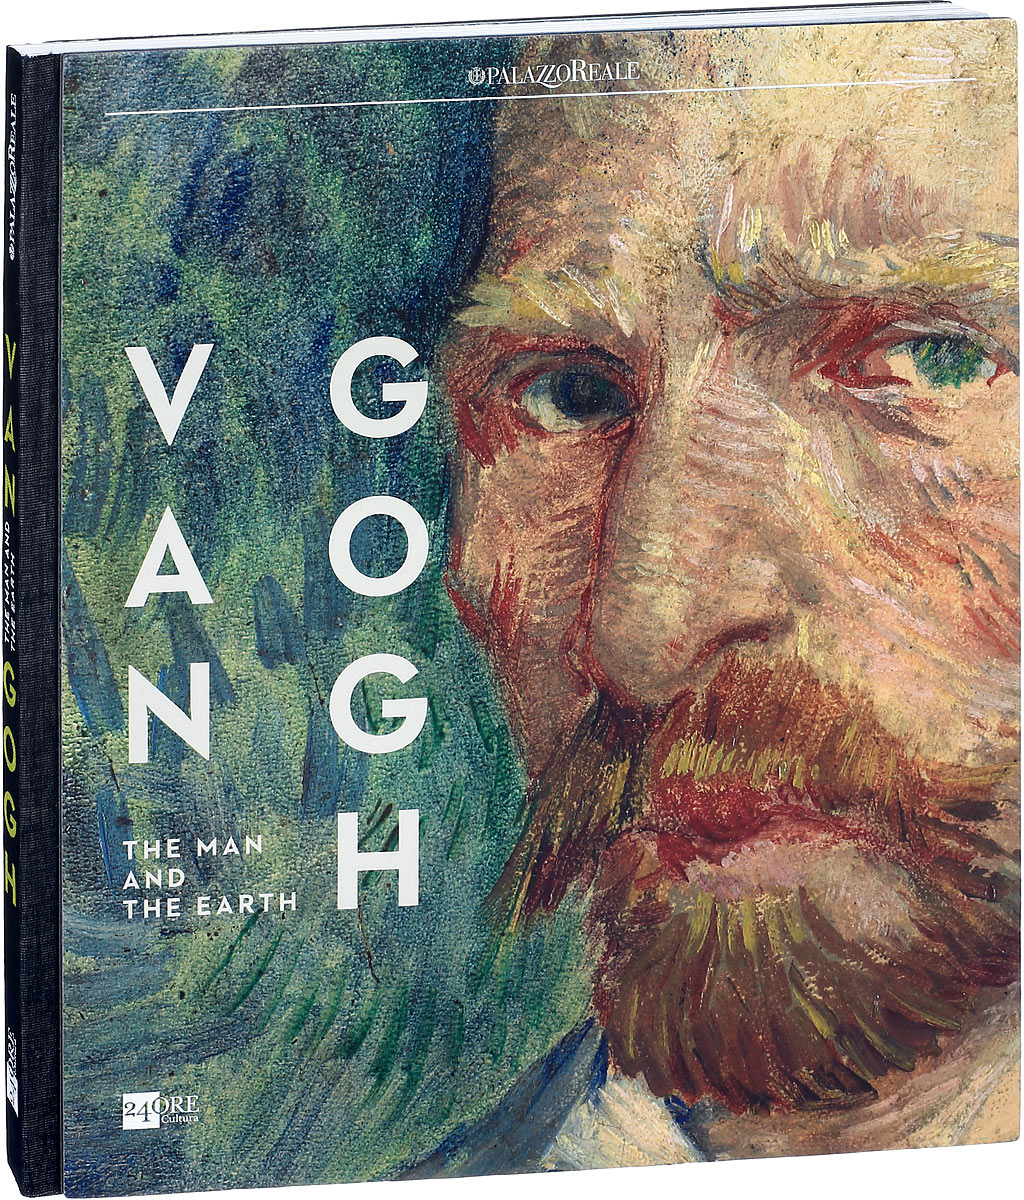 Van Gogh: The Man and the Earth hand painted famous oil painting the bedroom at arles c 1887 of vincent van gogh multicolored